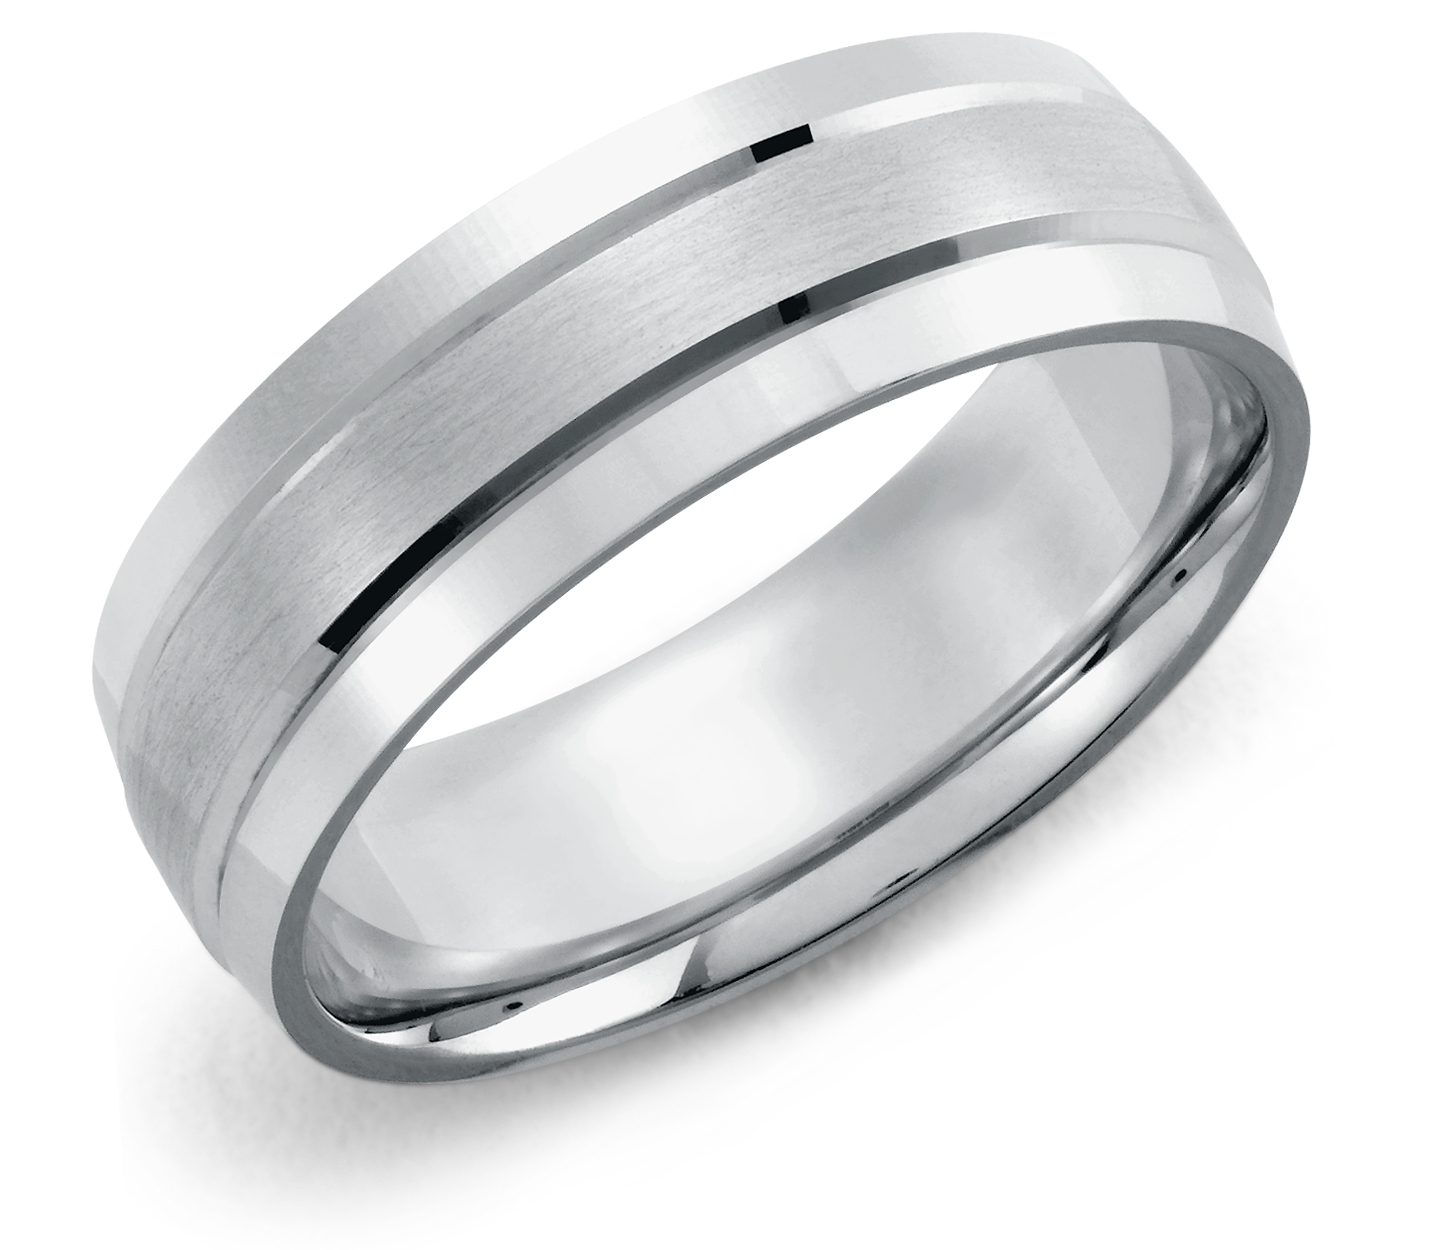 Top Ten Men's Wedding Rings